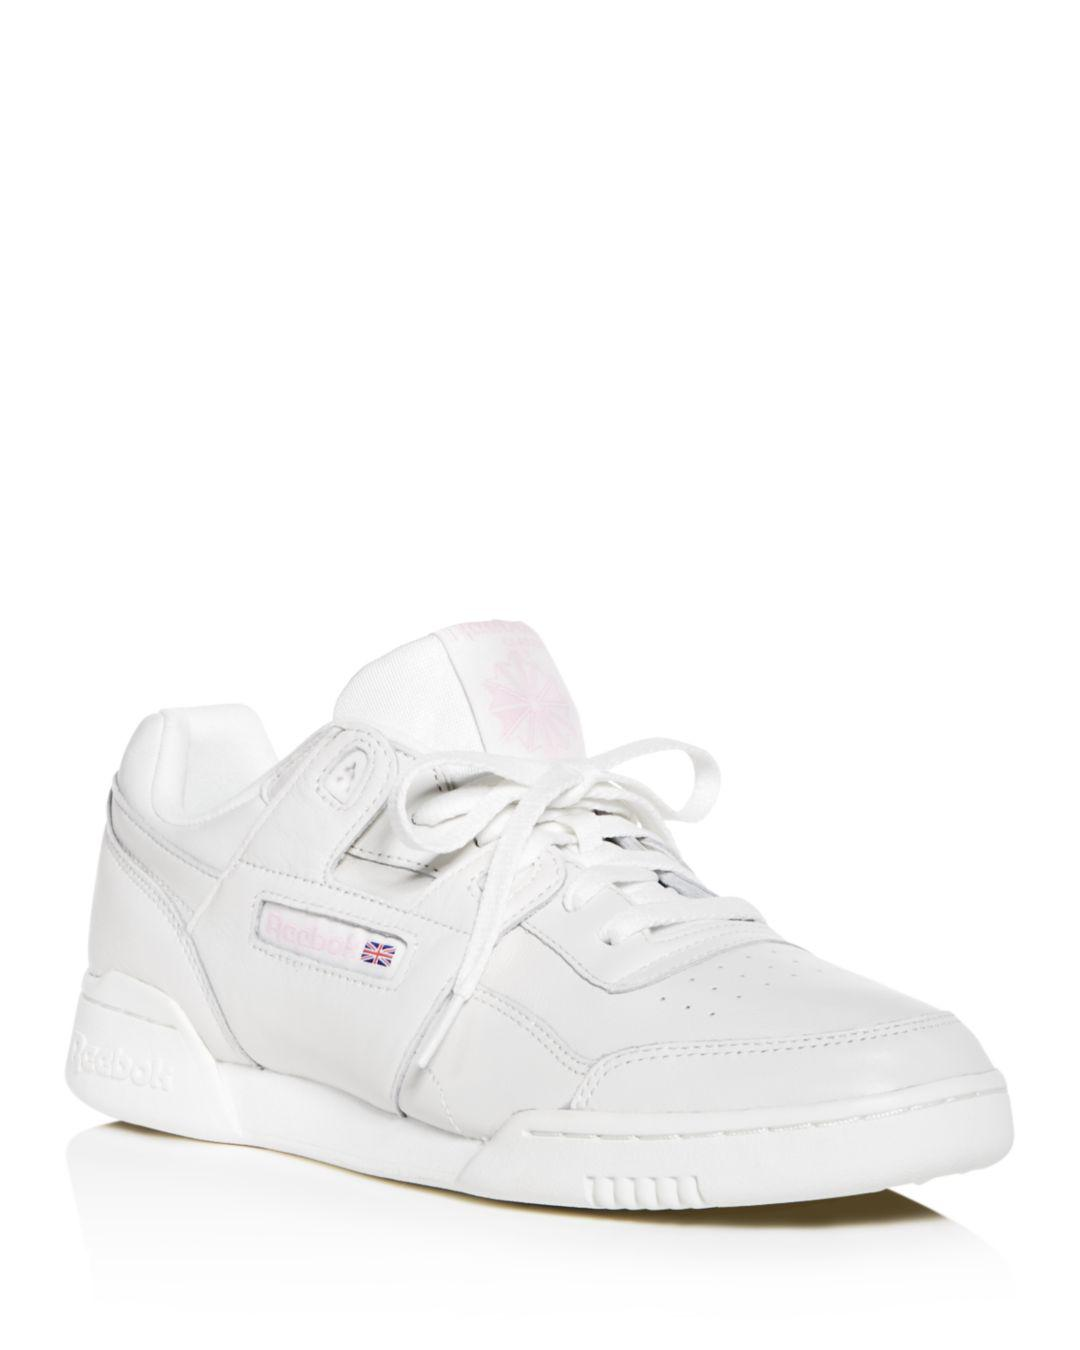 0e5927efe9a Reebok Women s Workout Plus Vintage Lace Up Sneakers in White - Lyst